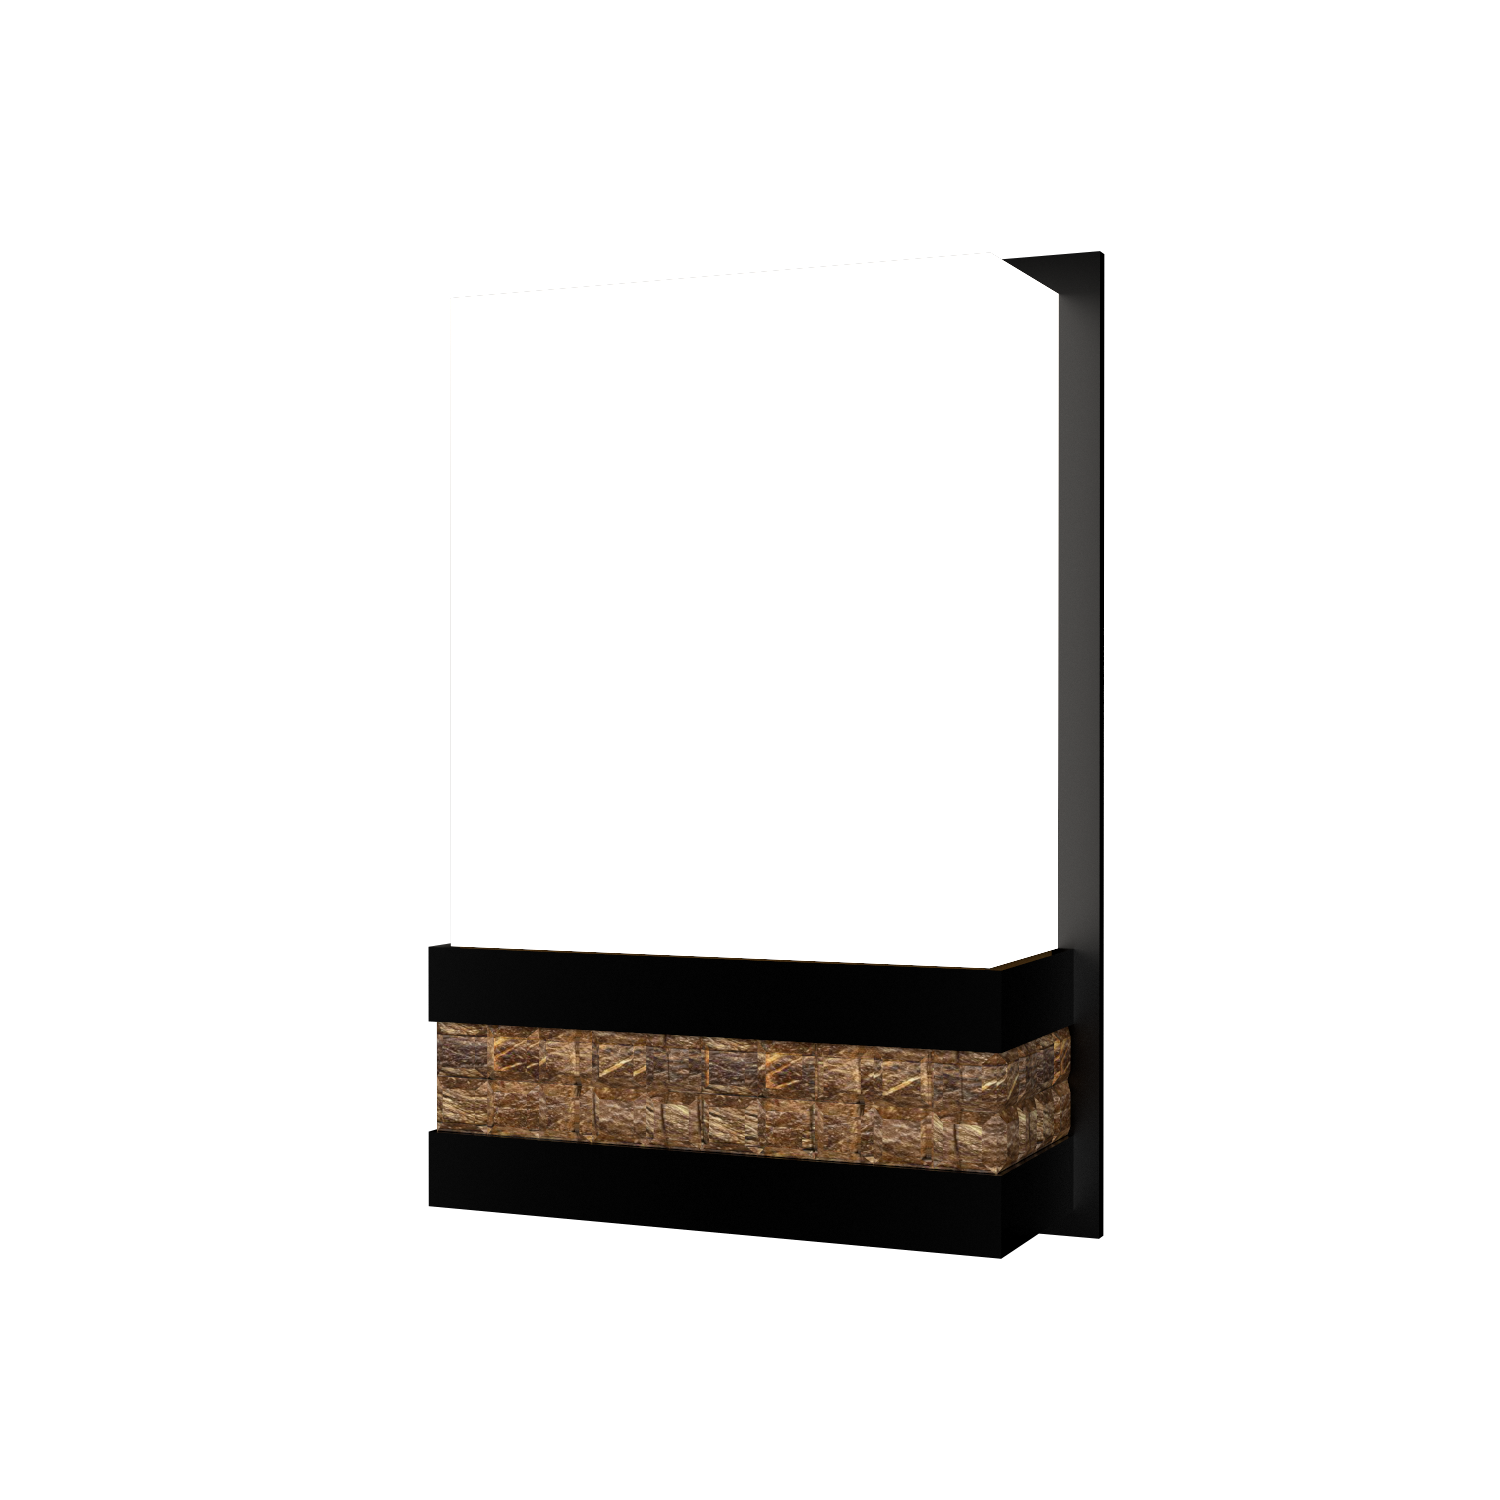 Wall Lamp Accord Pastilhada 443 - Pastilhada Line Accord Lighting | 02. Matte Black